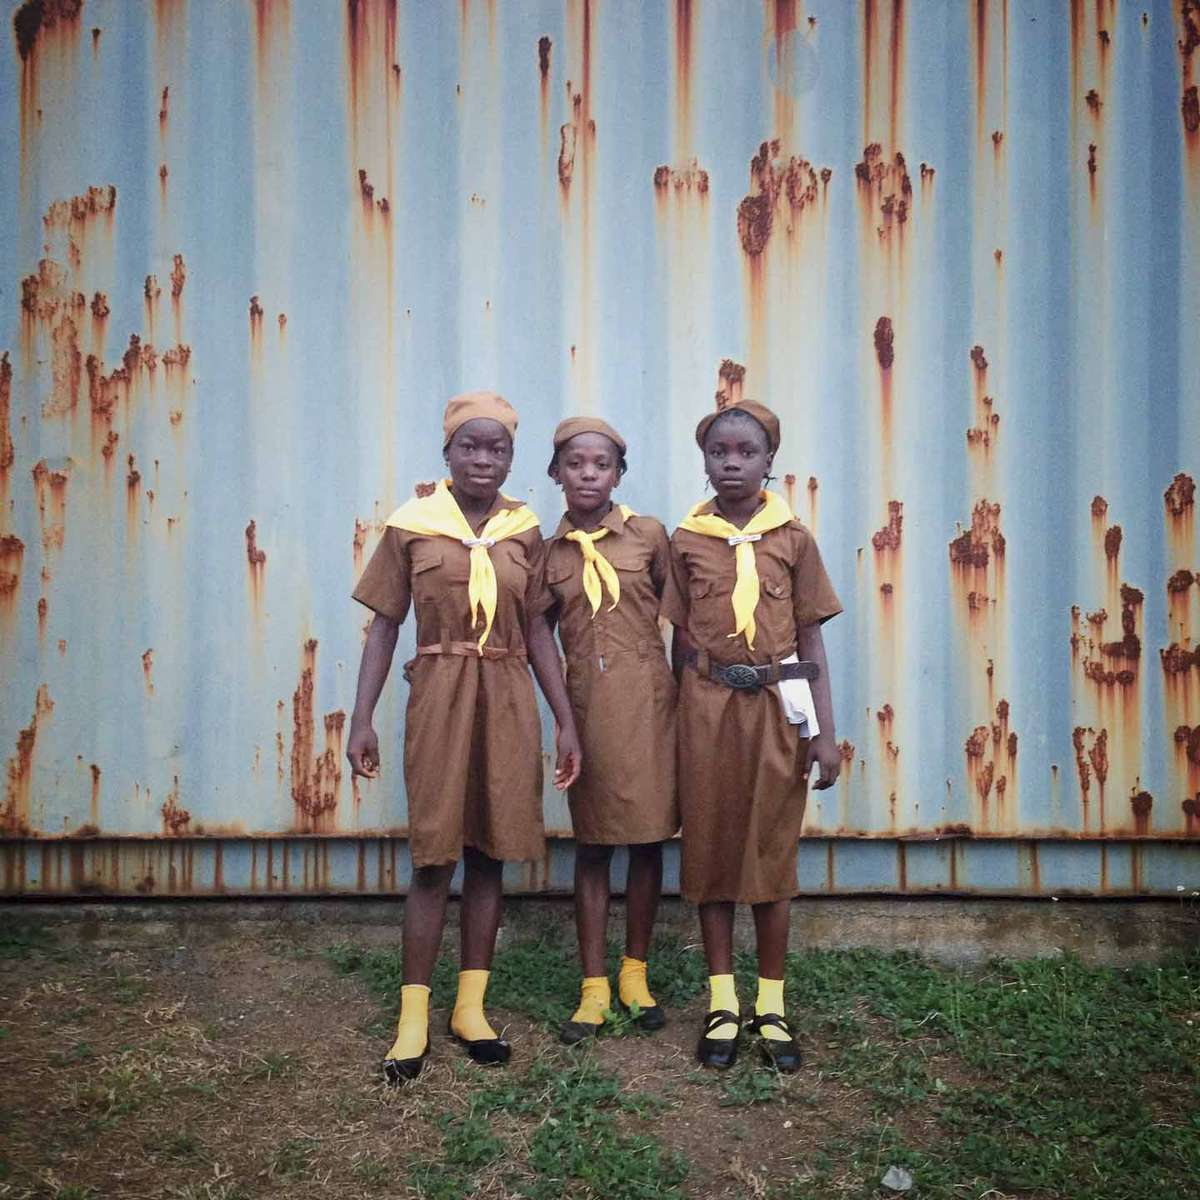 Girl scouts in Monrovia, Liberia. January 2013.